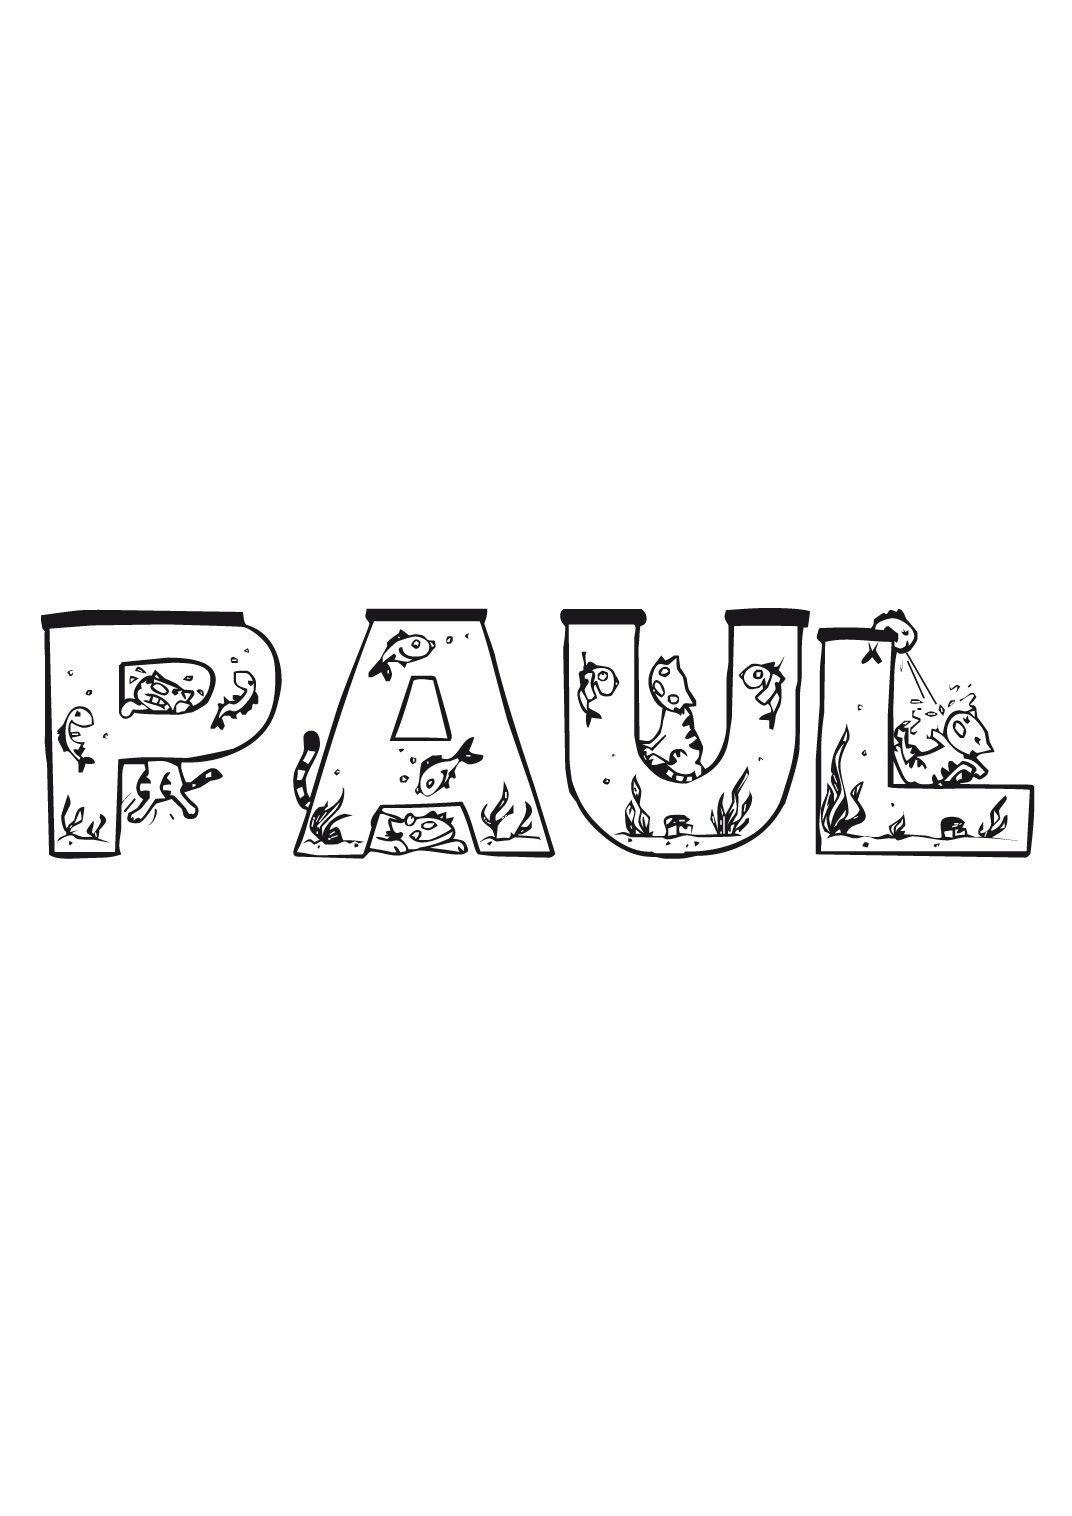 Coloriage Paul - Coloriage Prenoms - Coloriages Divers